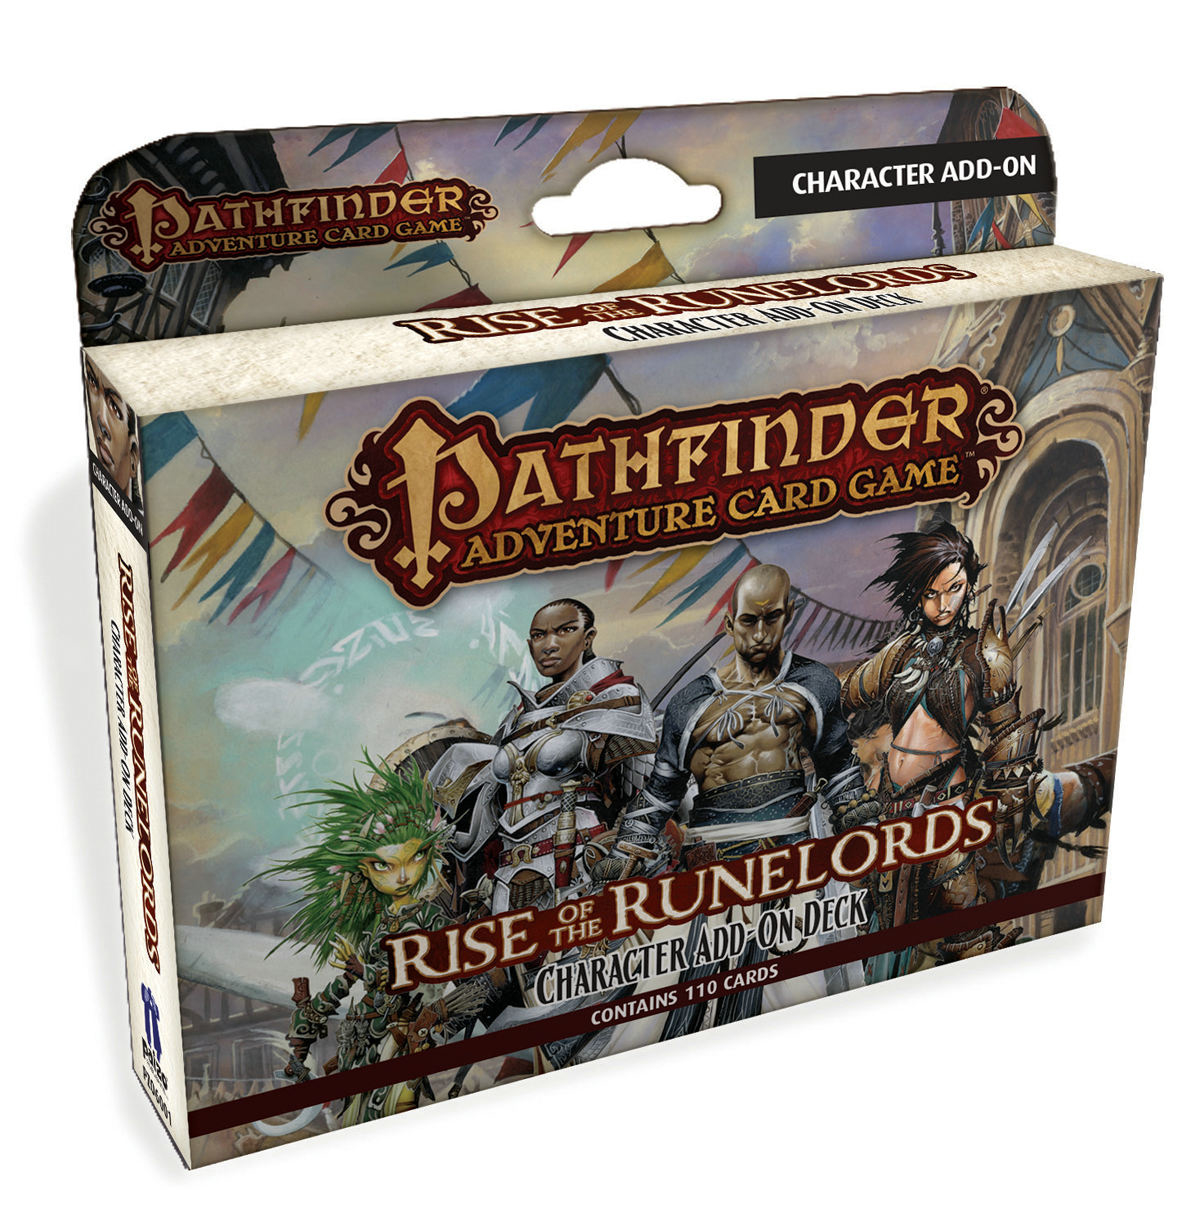 PATHFINDER ADV CARD GAME RISE O/T RUNELORDS CHAR DECK